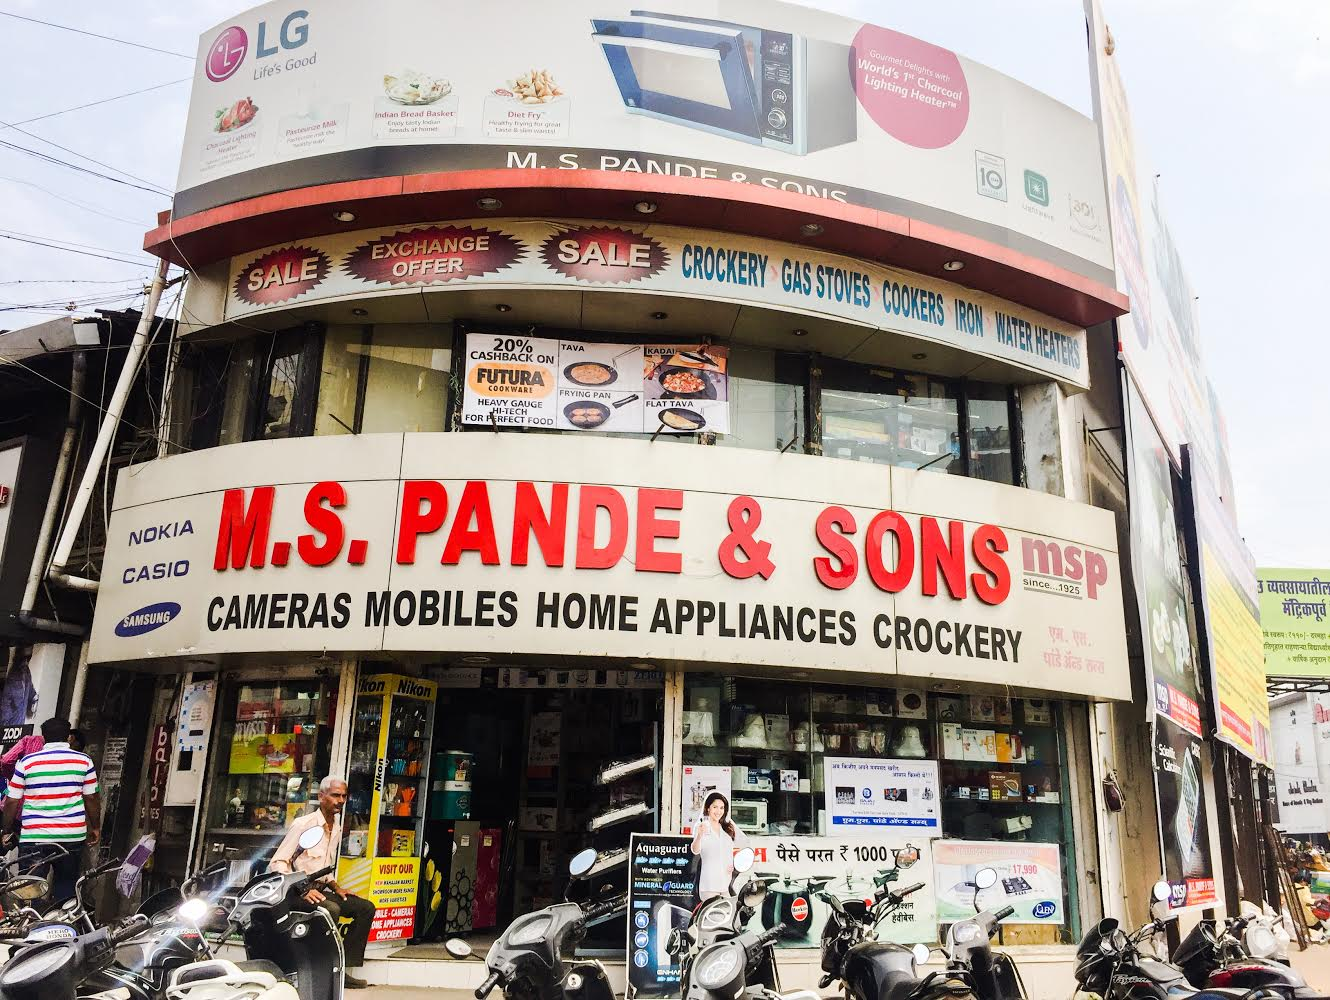 M S Pande and Sons, www.pandesons.com